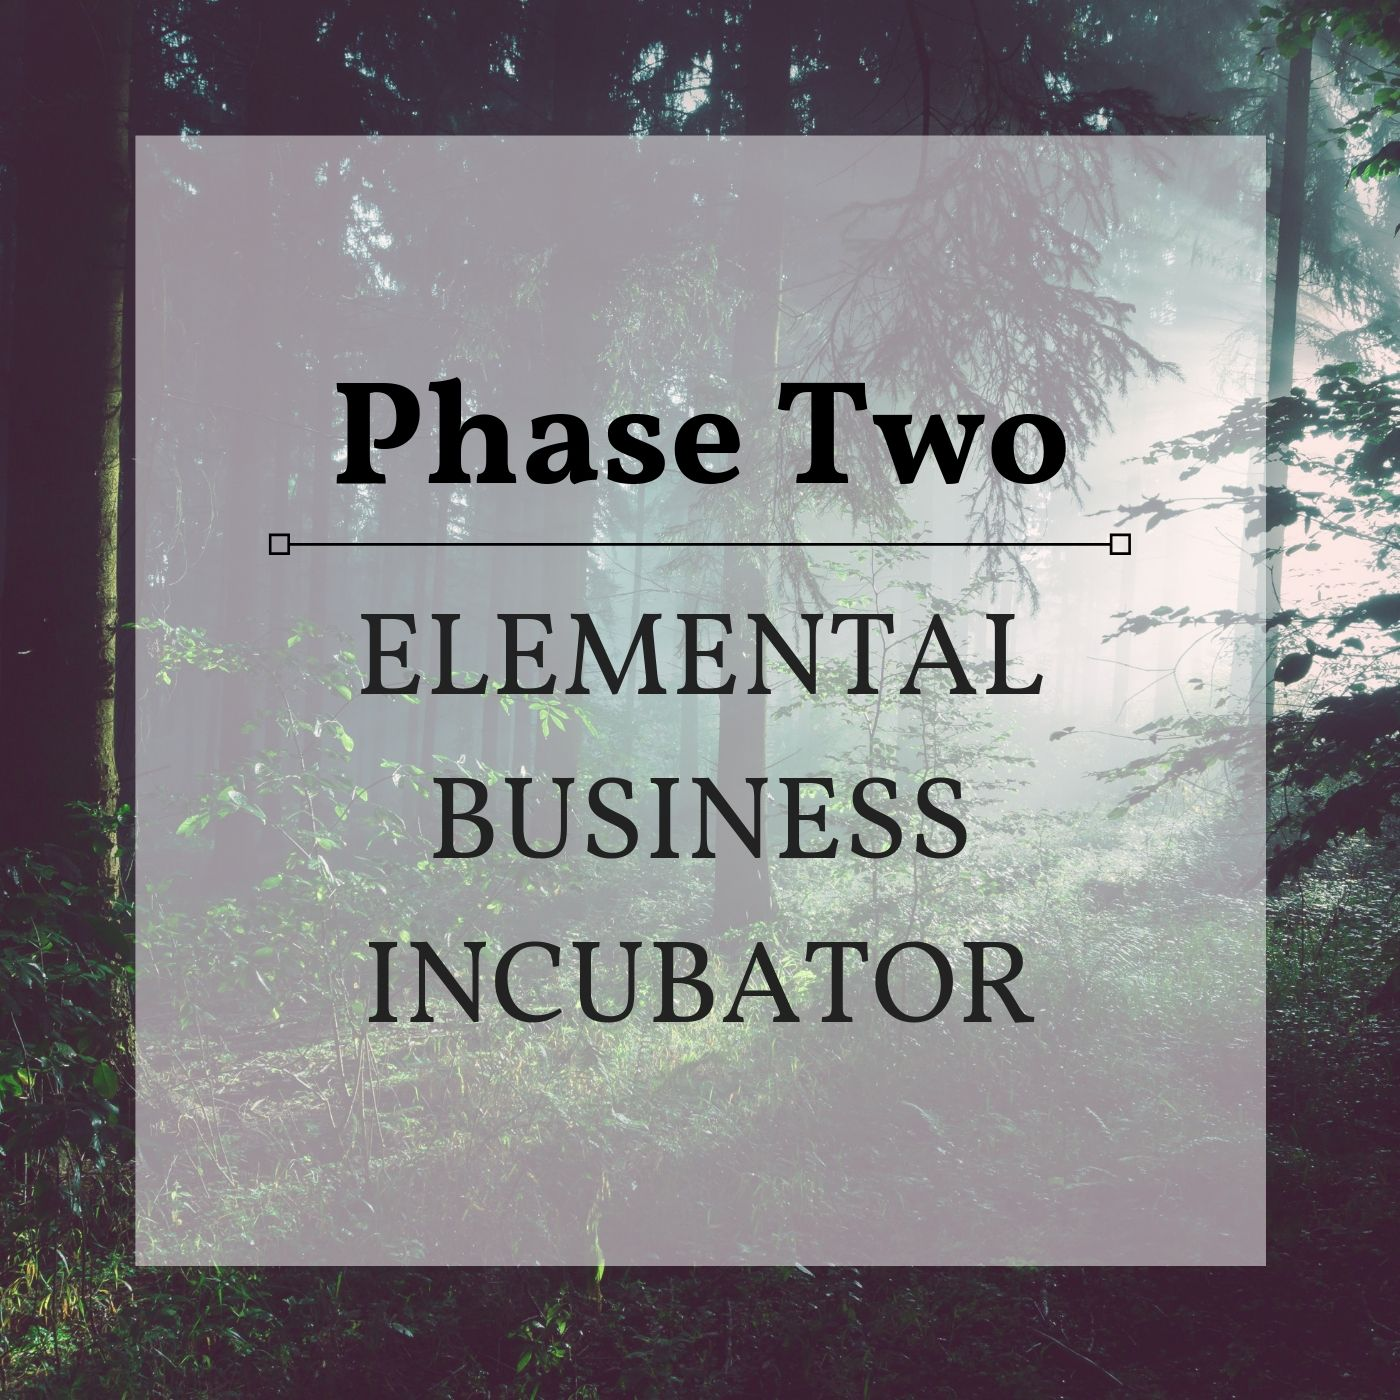 - Phase 2 is about integration, magic and ritual. It's where you connect more deeply with other members of the Incubator.